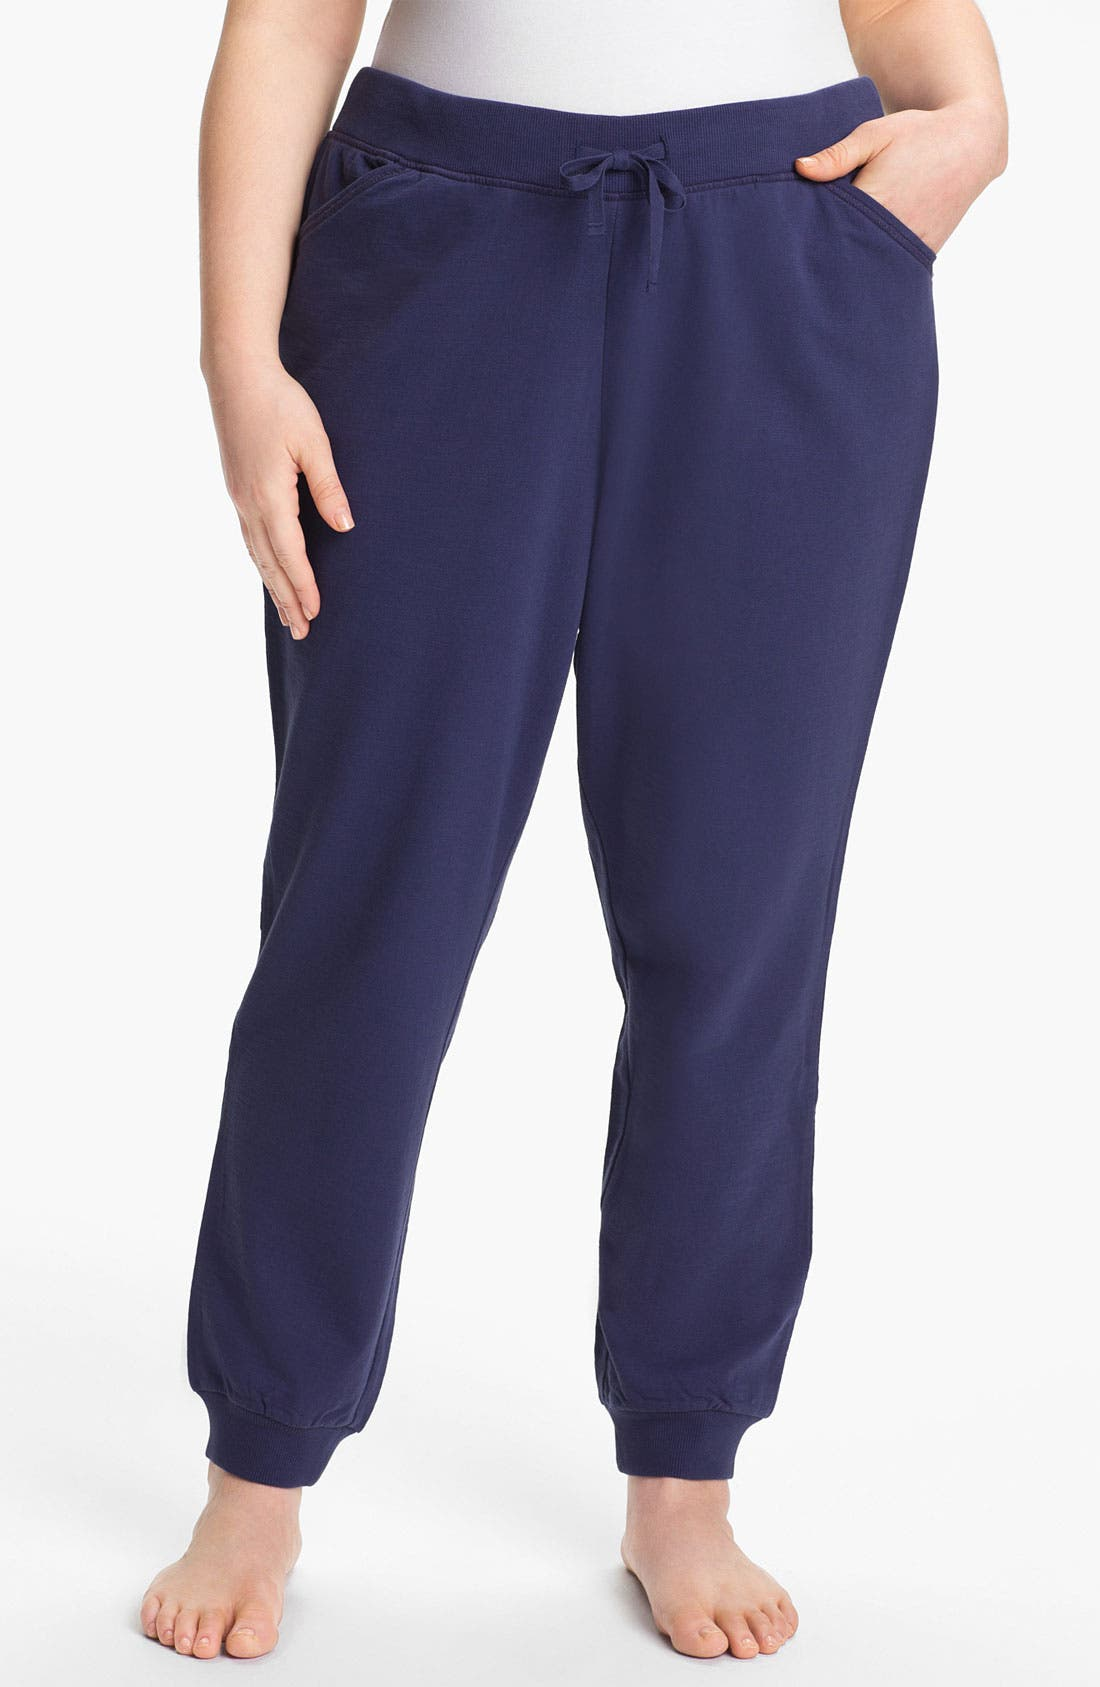 Alternate Image 1 Selected - Sejour Cuff Terry Pants (Plus Size)